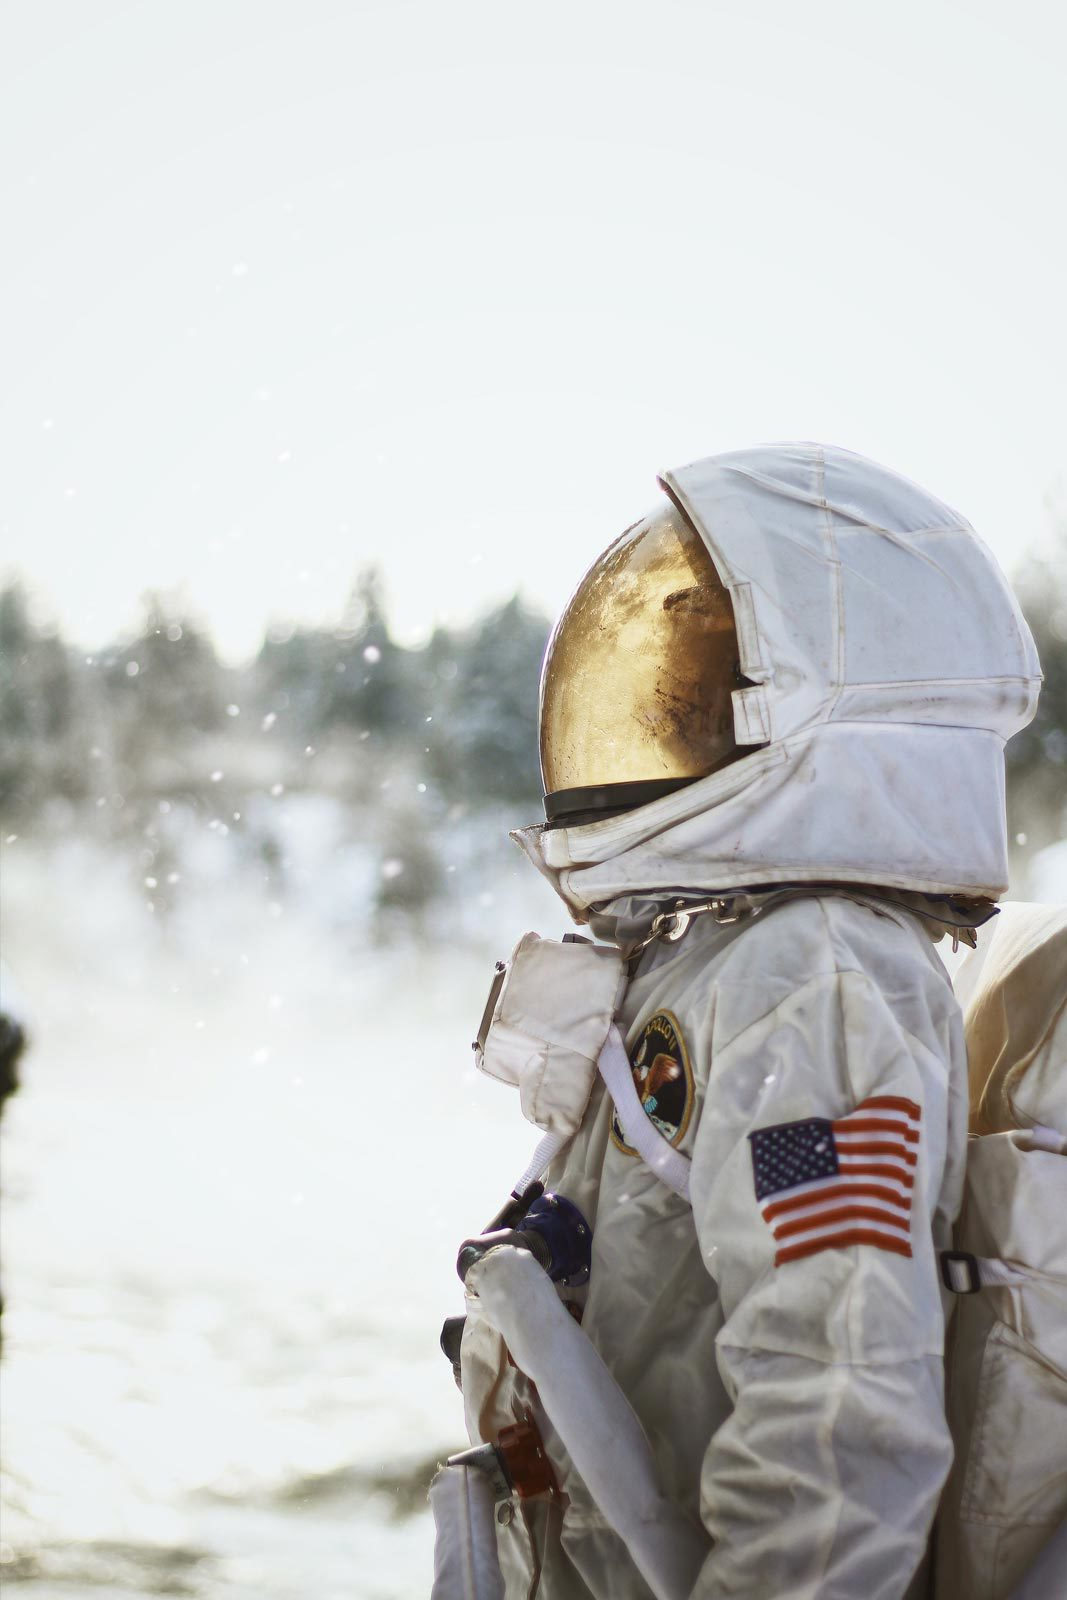 Astronaut with American flag on sleeve looking up in snowy field.